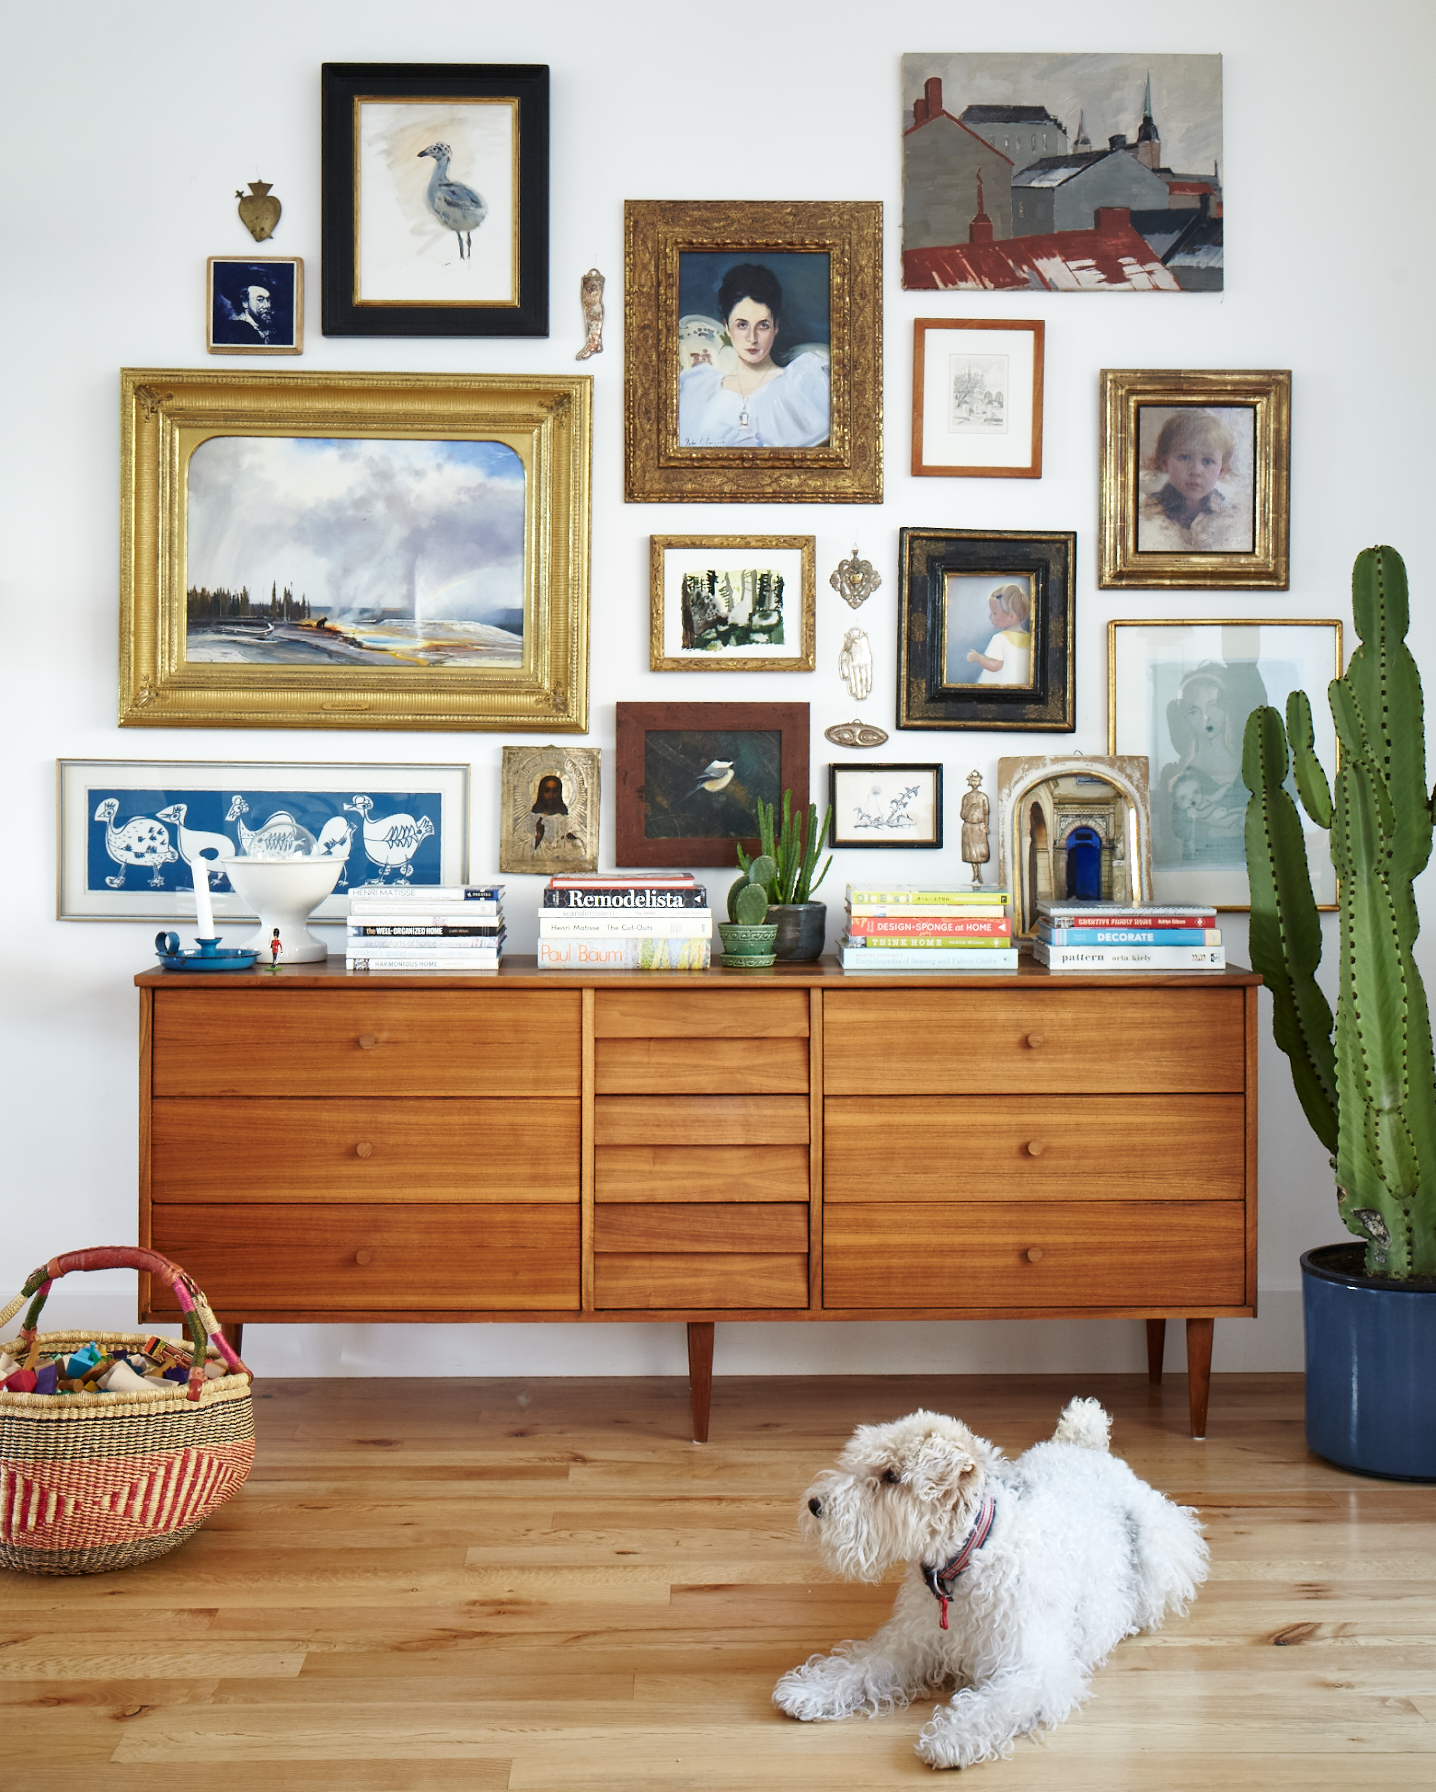 How to make a gallery wall gallery wall walls and galleries